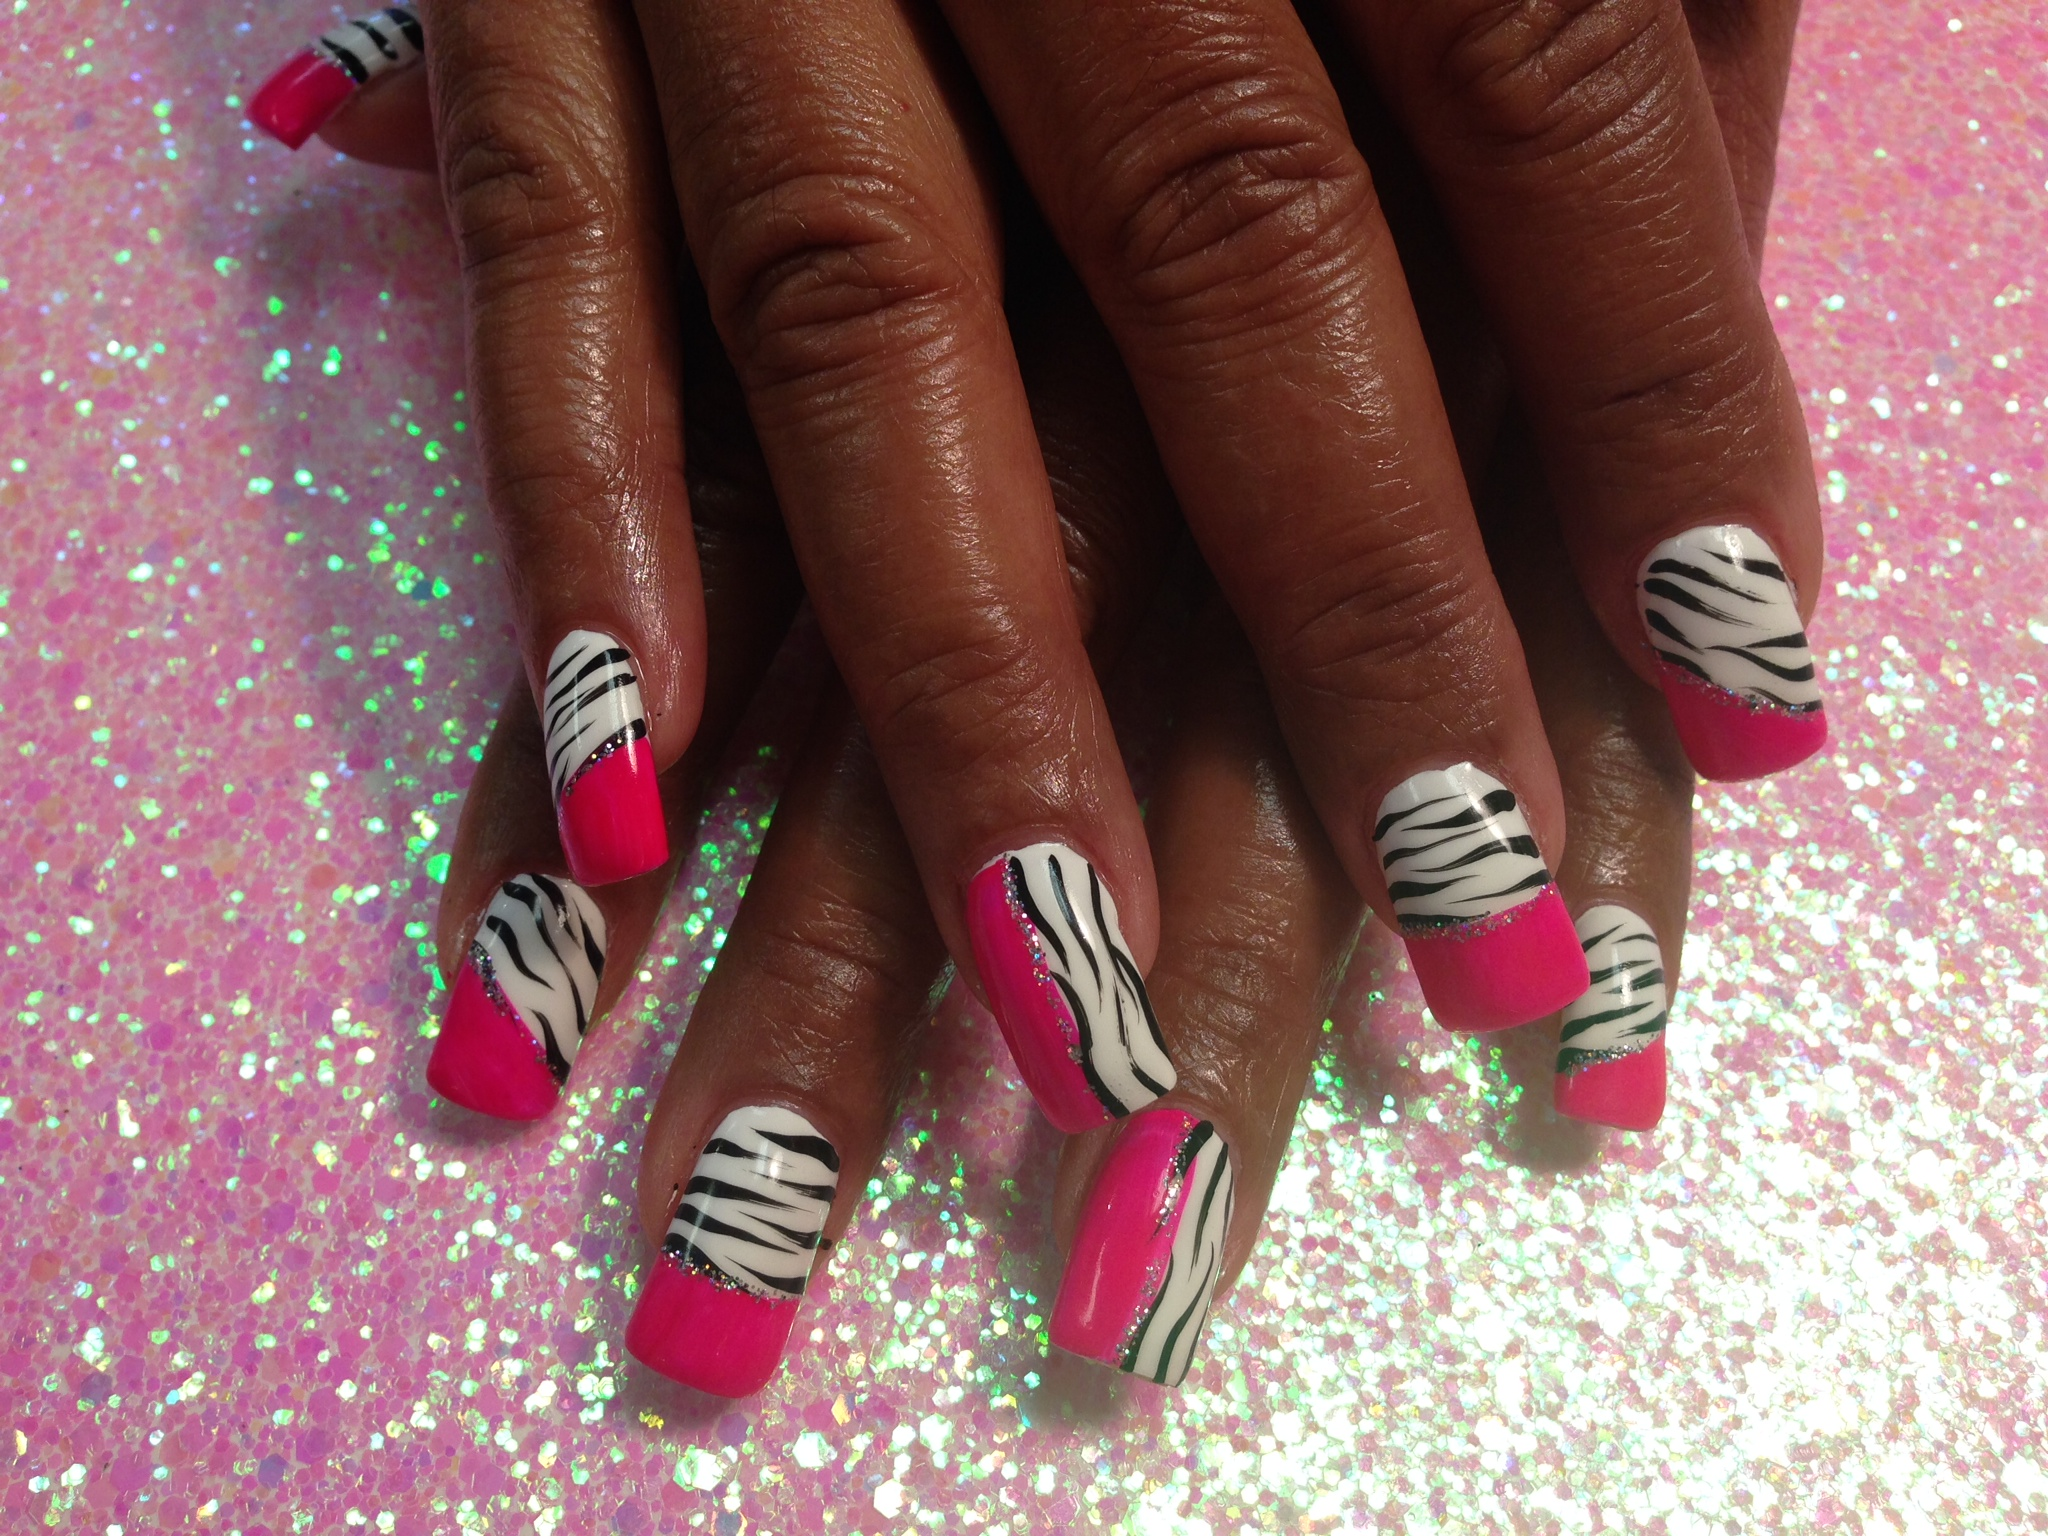 Pink White Tiger Nail Art Design By Top Nails Clarksville Tn